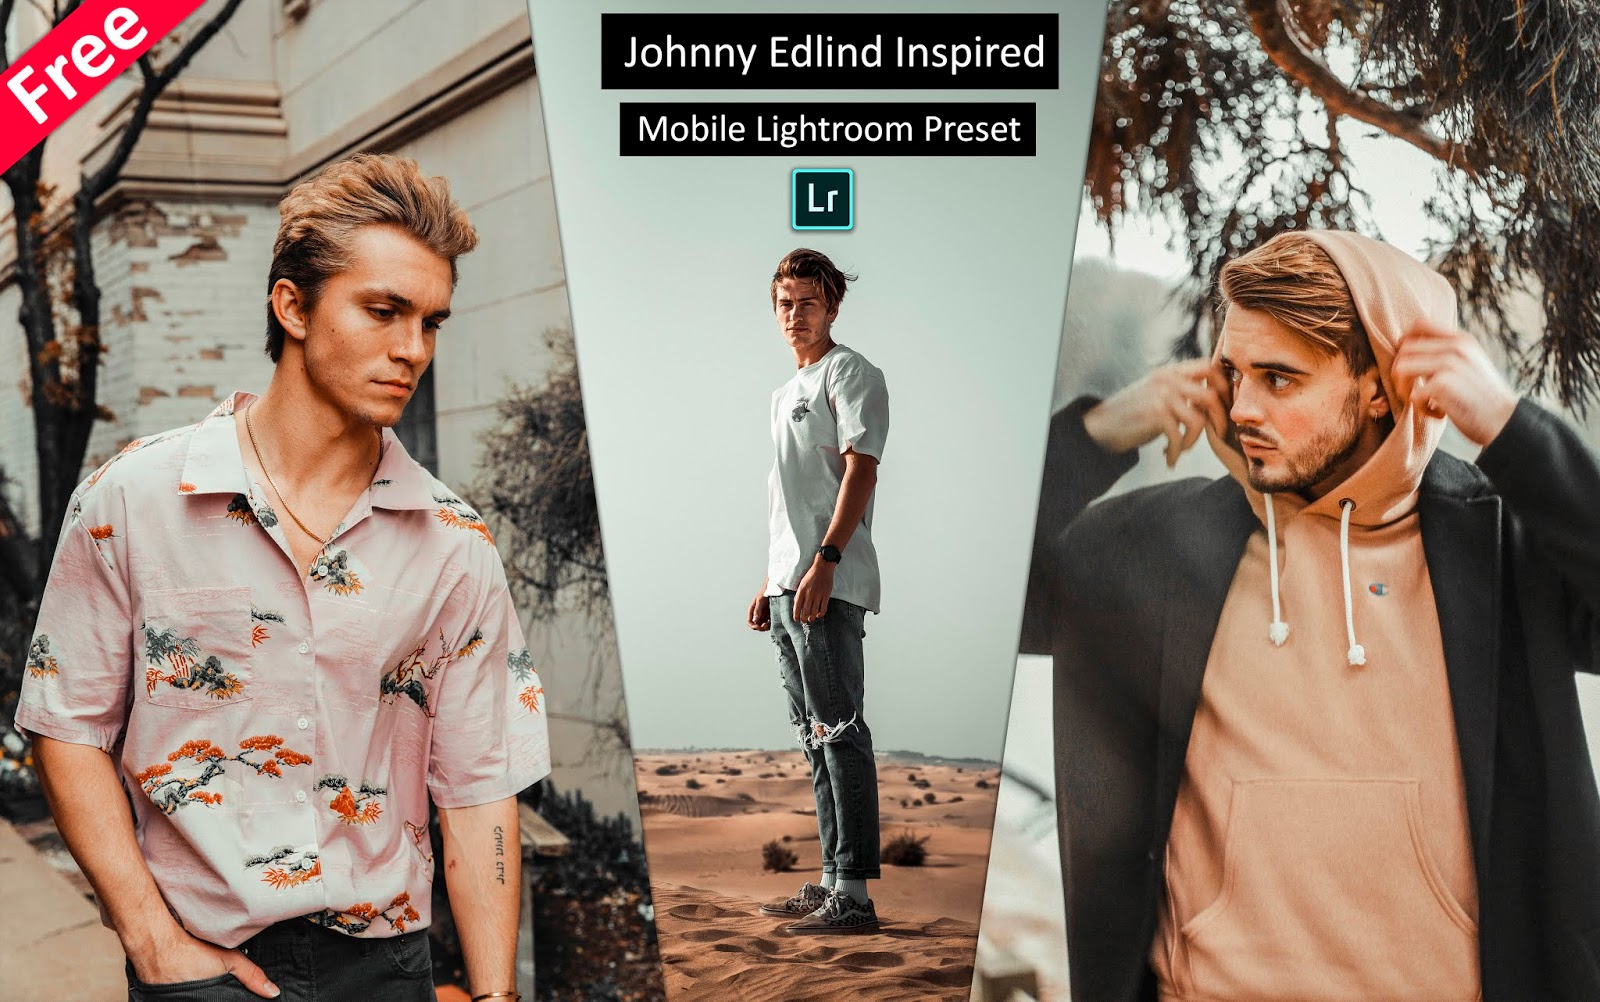 Download Johnny Edlind Inspired Mobile Lightroom Presets for Free | How to Edit Photos Like @johnnyedlind in Mobile Lightroom